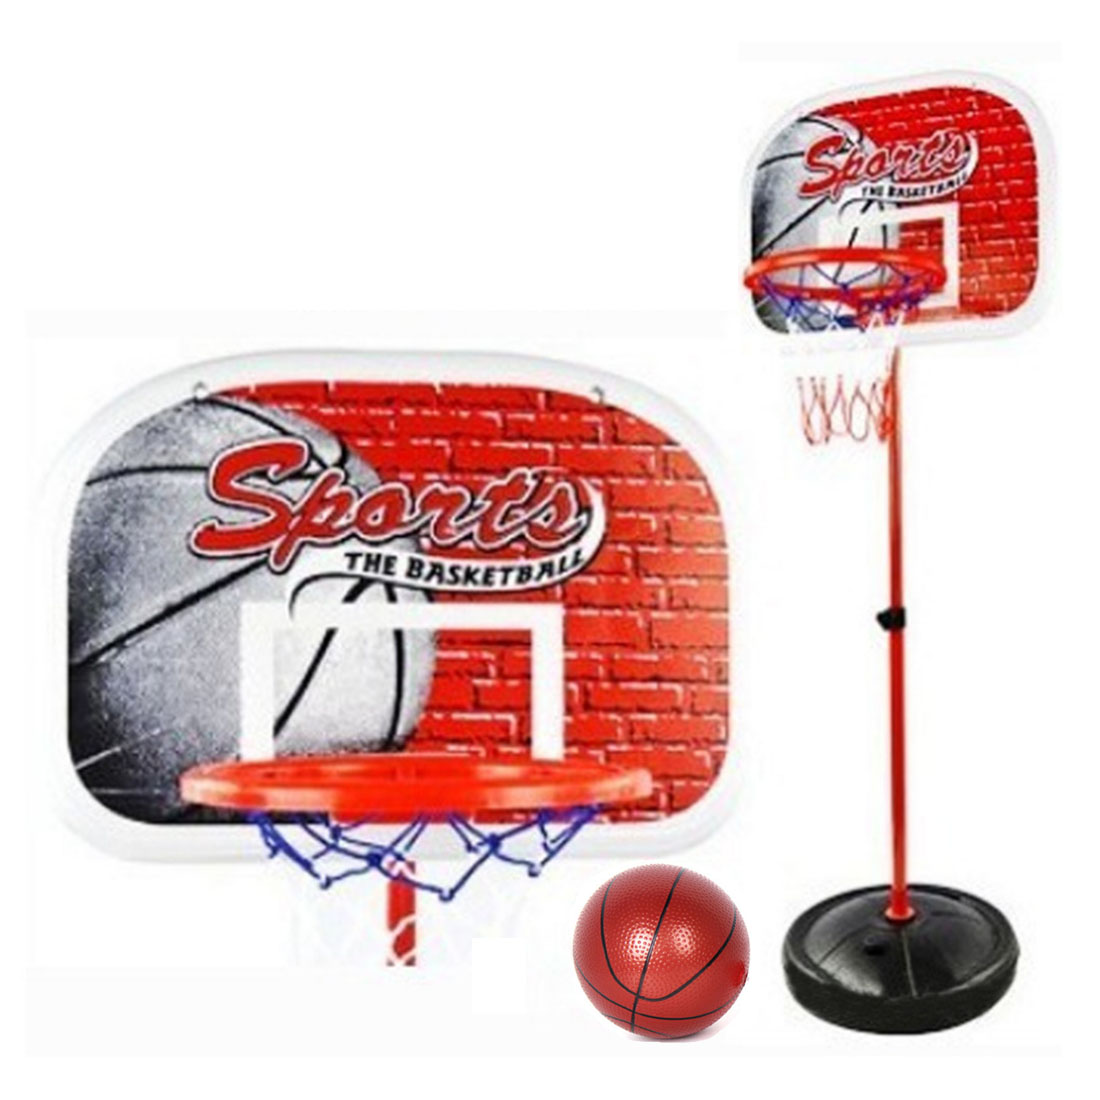 50-147cm Children Basketball Sport Portable Backboard Basketball Stand 4-Section Height Adjustable with Inflator